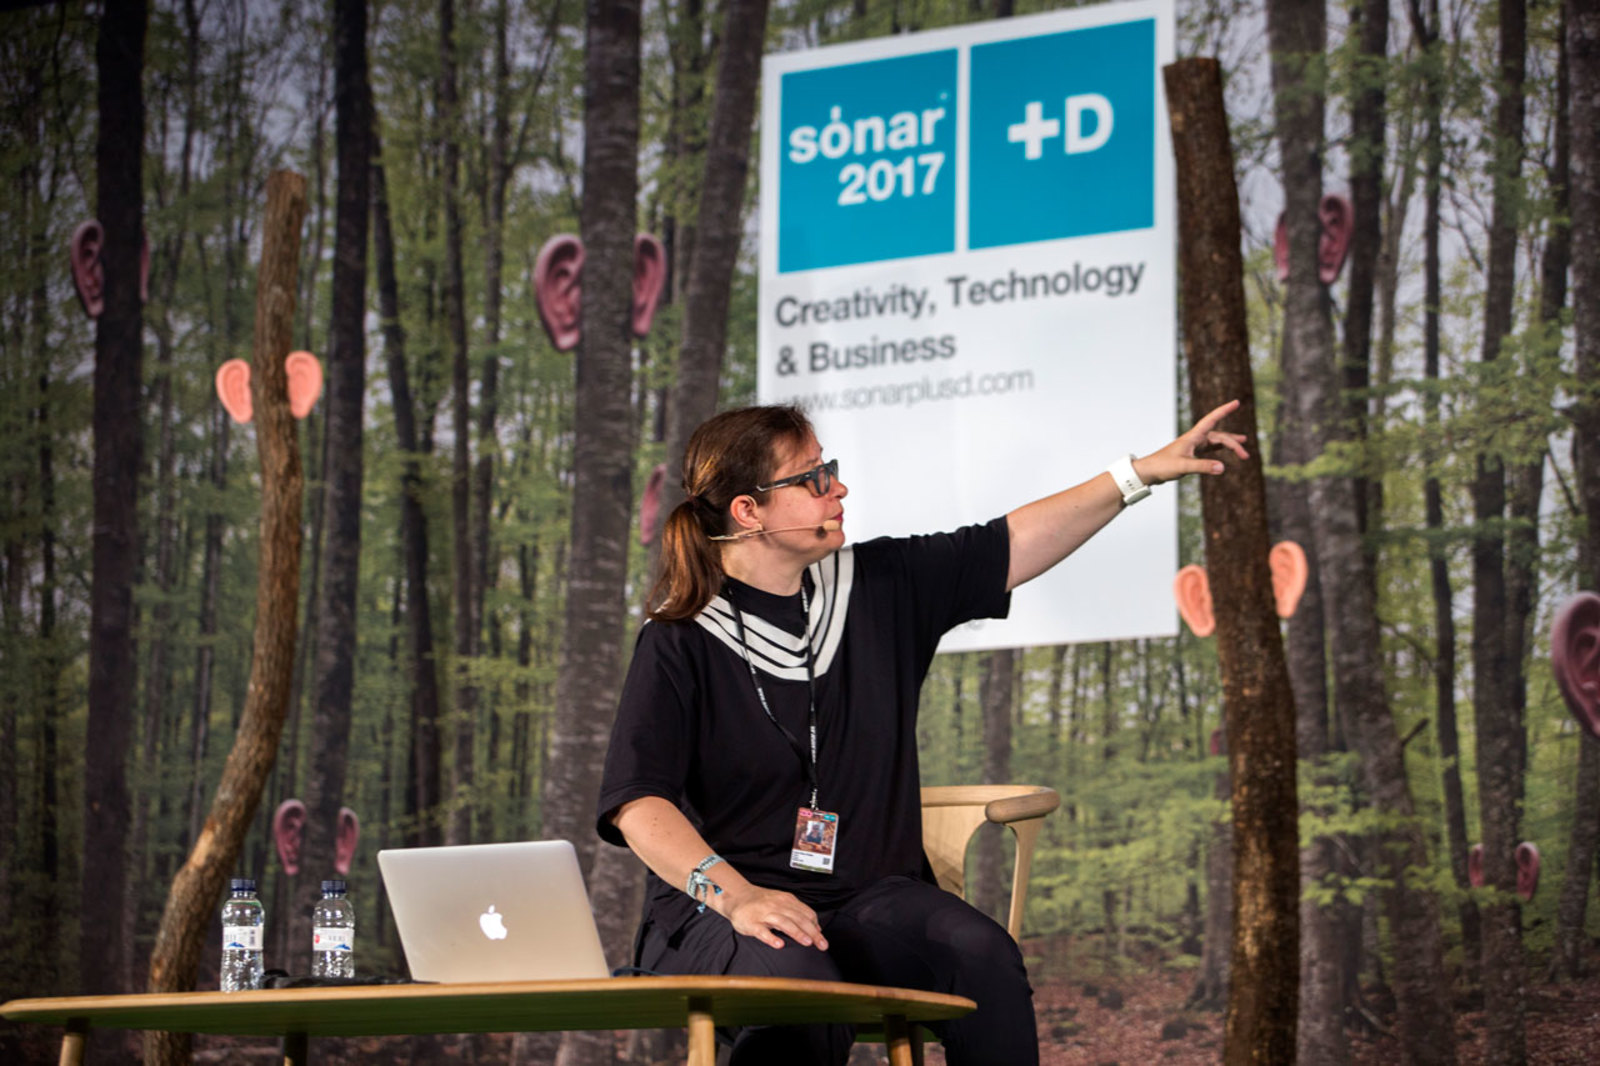 How our robots will charm us (and why we want them to) per Carla Diana - Sónar+D Barcelona 2017